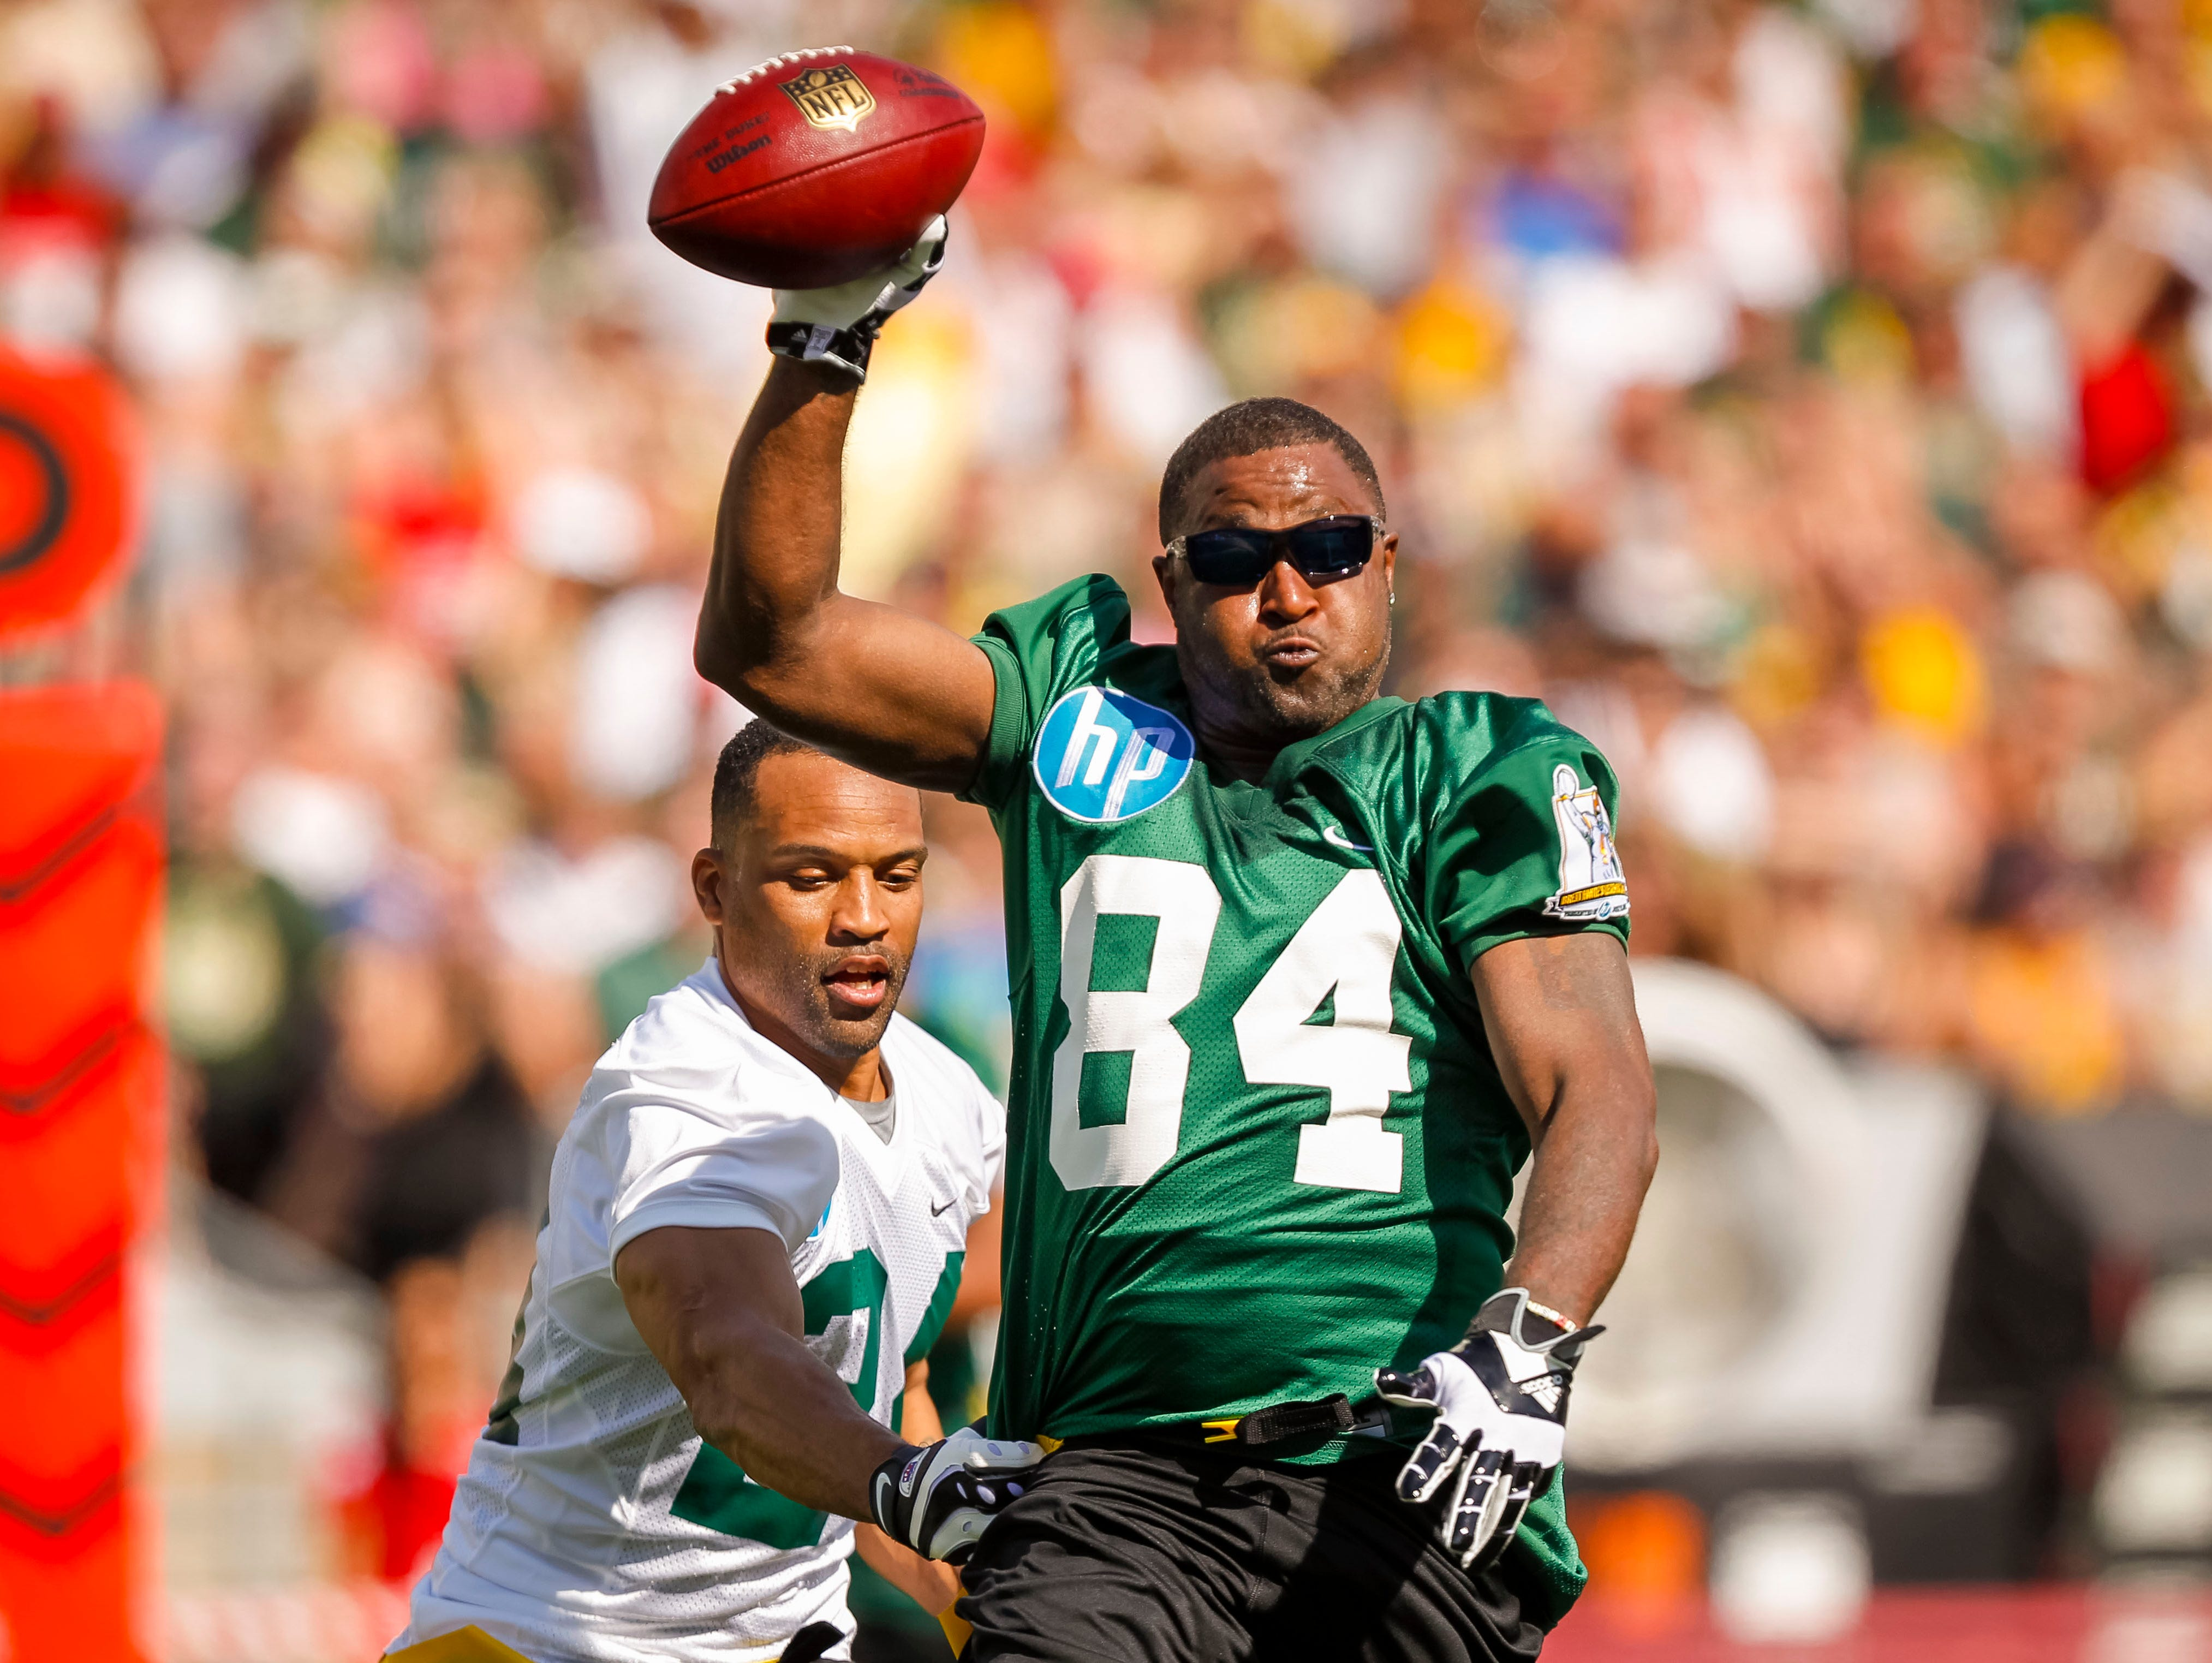 Former Green Bay Packers wide receiver Andre Rison (84) gets around former Arizona Cardinals safety Robert Griffith during a flag football game July 19, 2015, at Camp Randall Stadium in Madison, Wis.